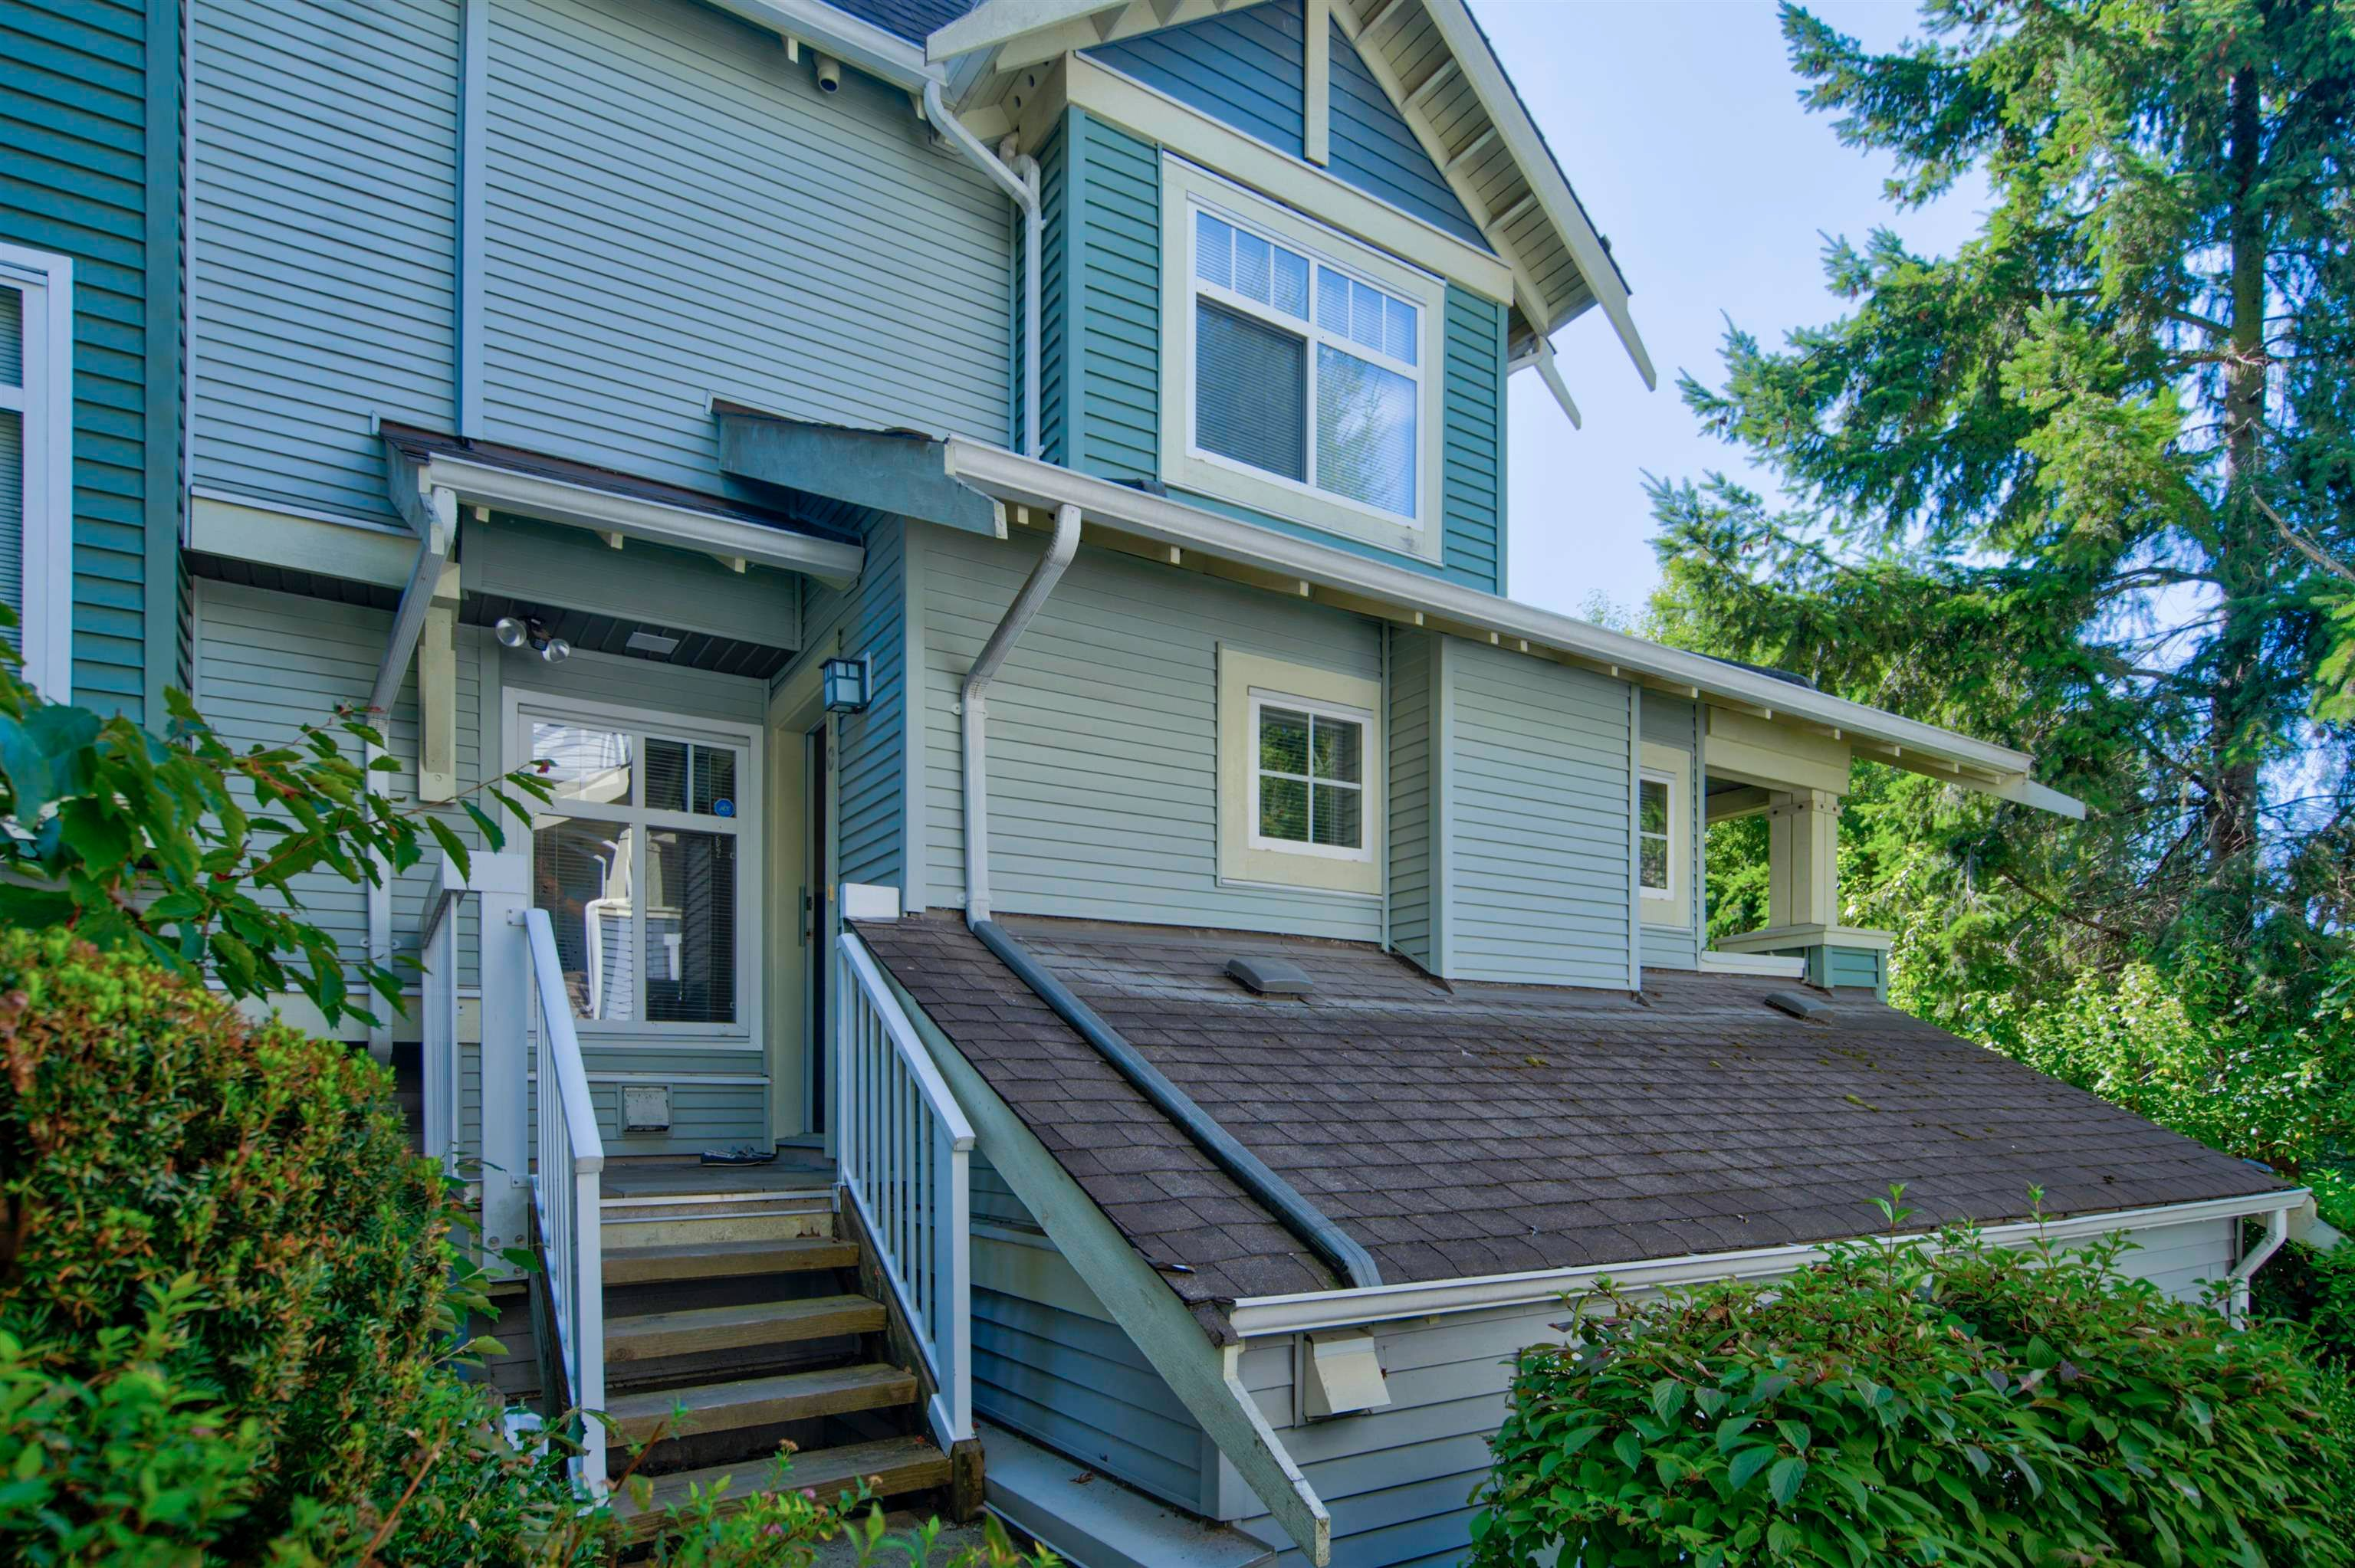 Main Photo: 10 7488 SOUTHWYNDE Avenue in Burnaby: South Slope Townhouse for sale (Burnaby South)  : MLS®# R2617010